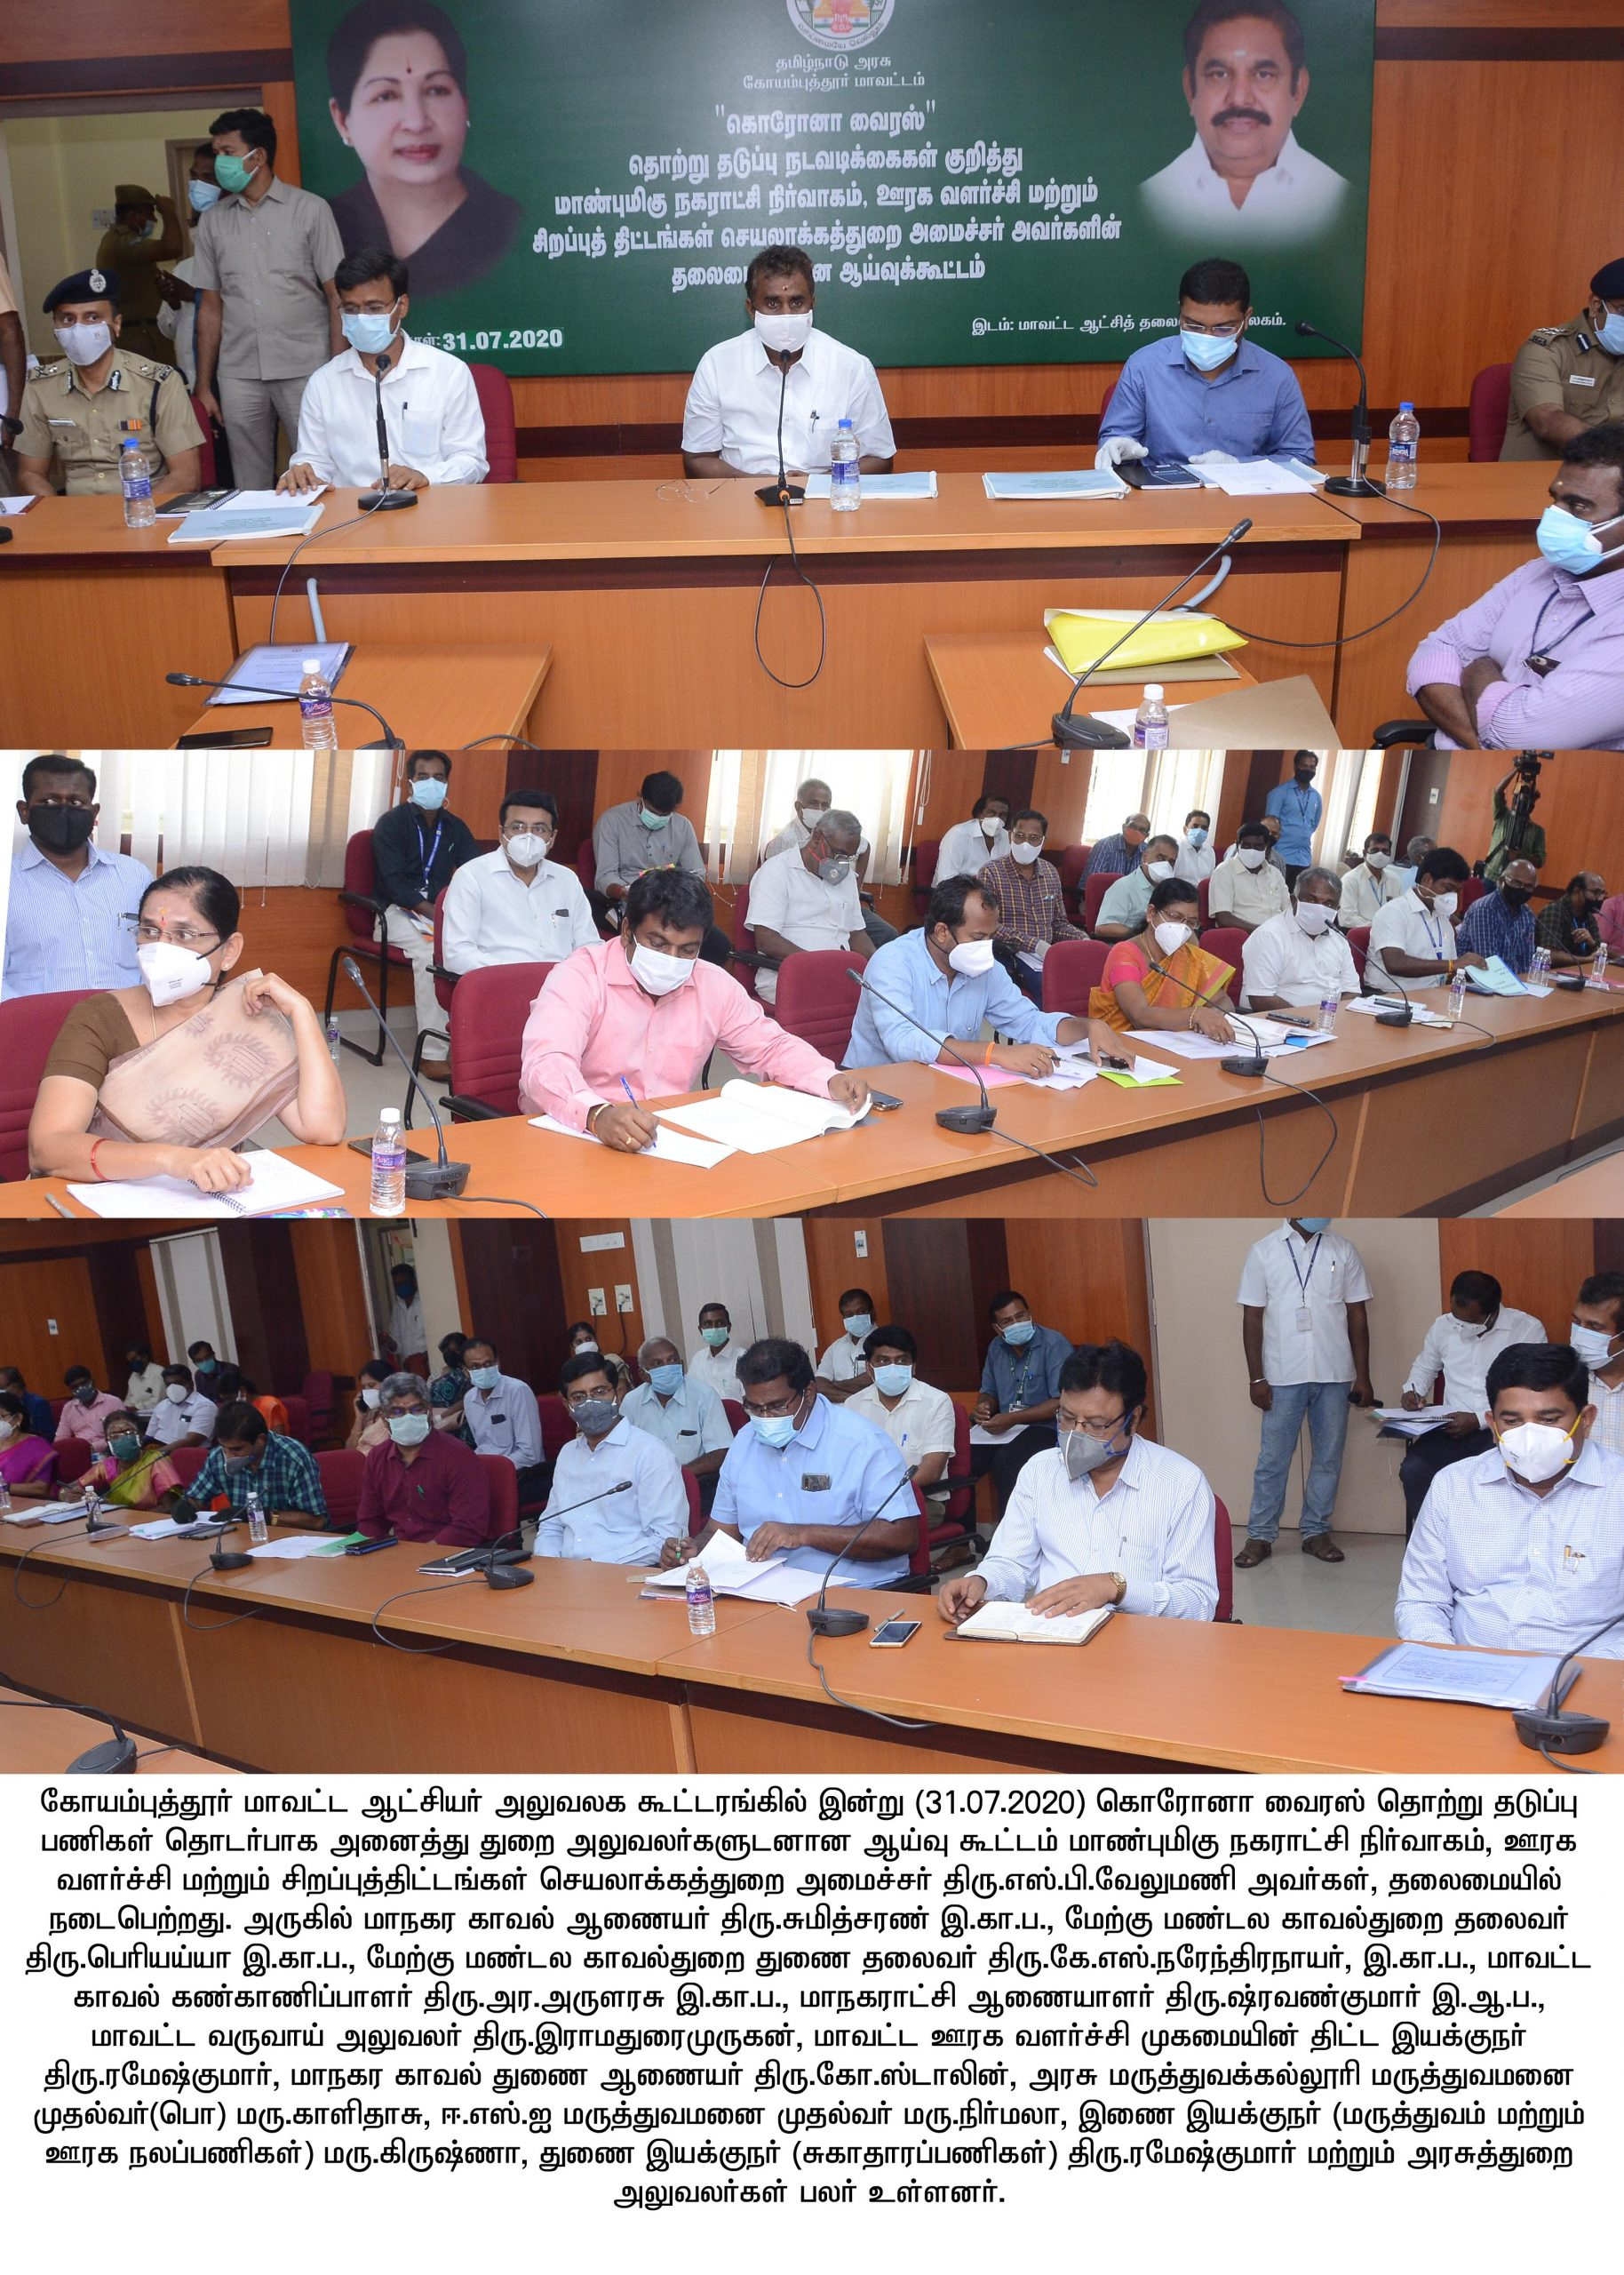 Corona Virus Prevention Review meeting conducted by Honble Minister